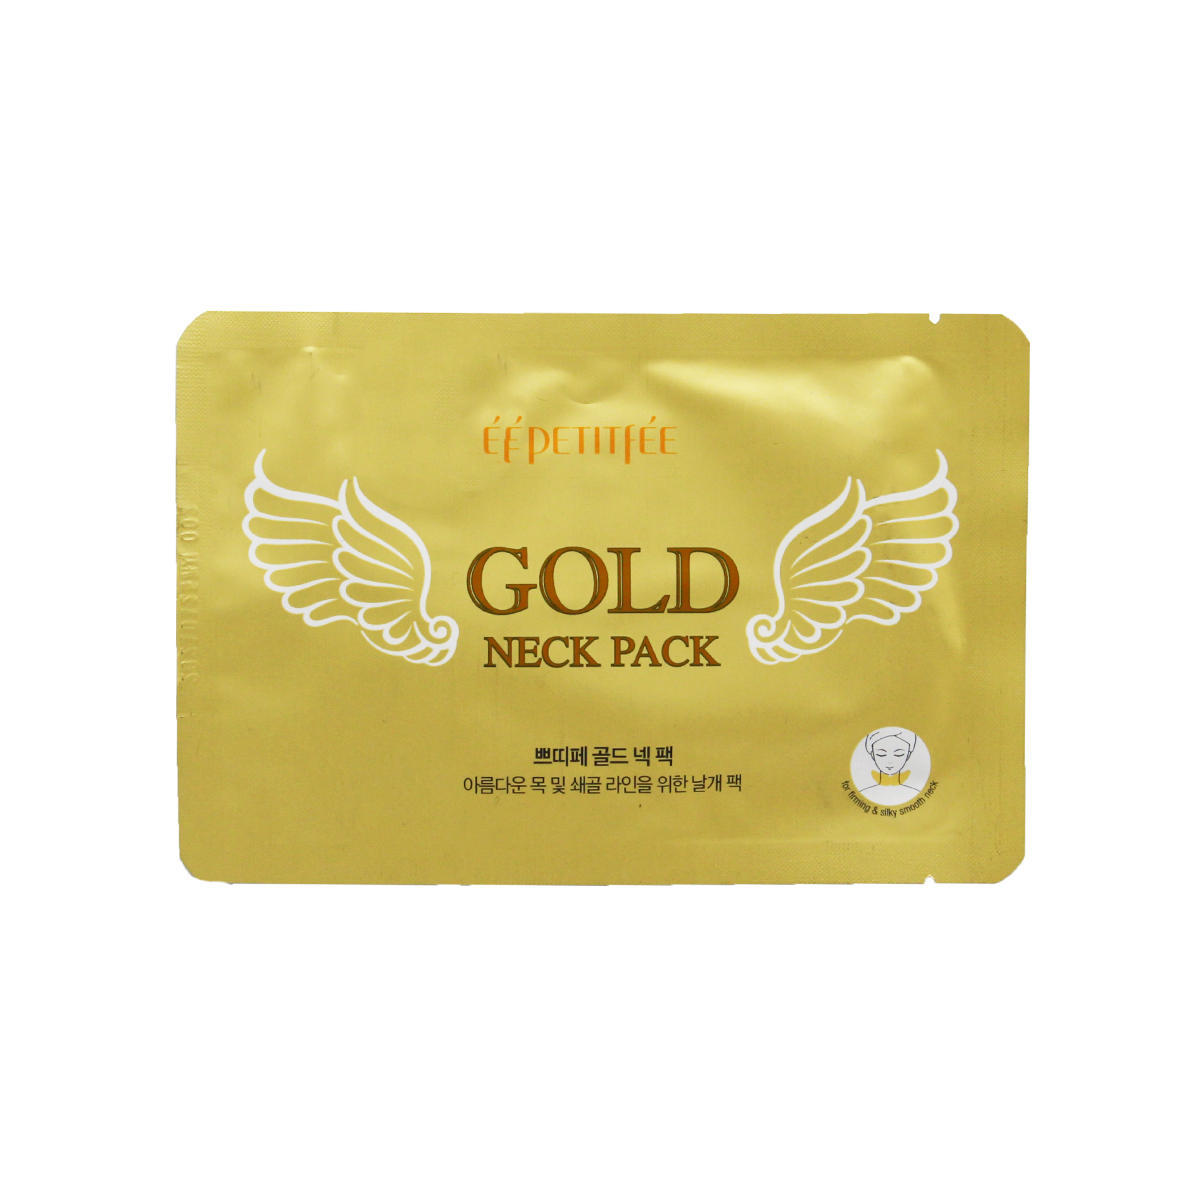 Гидрогелевые маски Патч для шеи Petitfee Gold Neck Pack, 1 шт import_files_c7_c700d6e35adf11e980fb3408042974b1_c700d6e45adf11e980fb3408042974b1.jpg